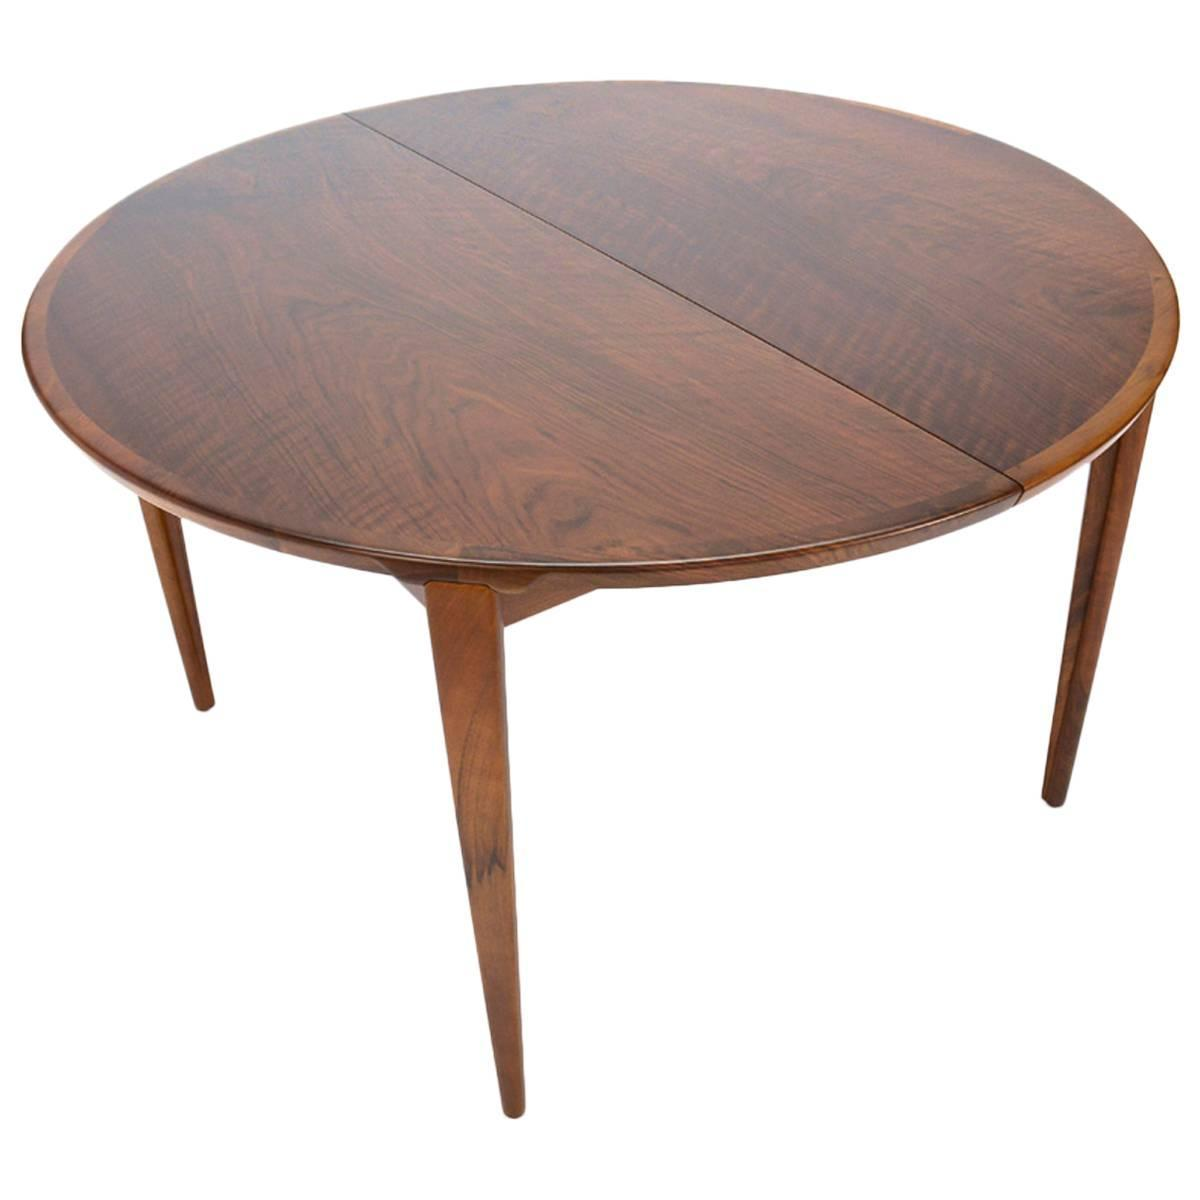 Round Walnut Dining Table by Rosengren Hansen at 1stdibs : 4058563z from www.1stdibs.com size 1200 x 1200 jpeg 51kB